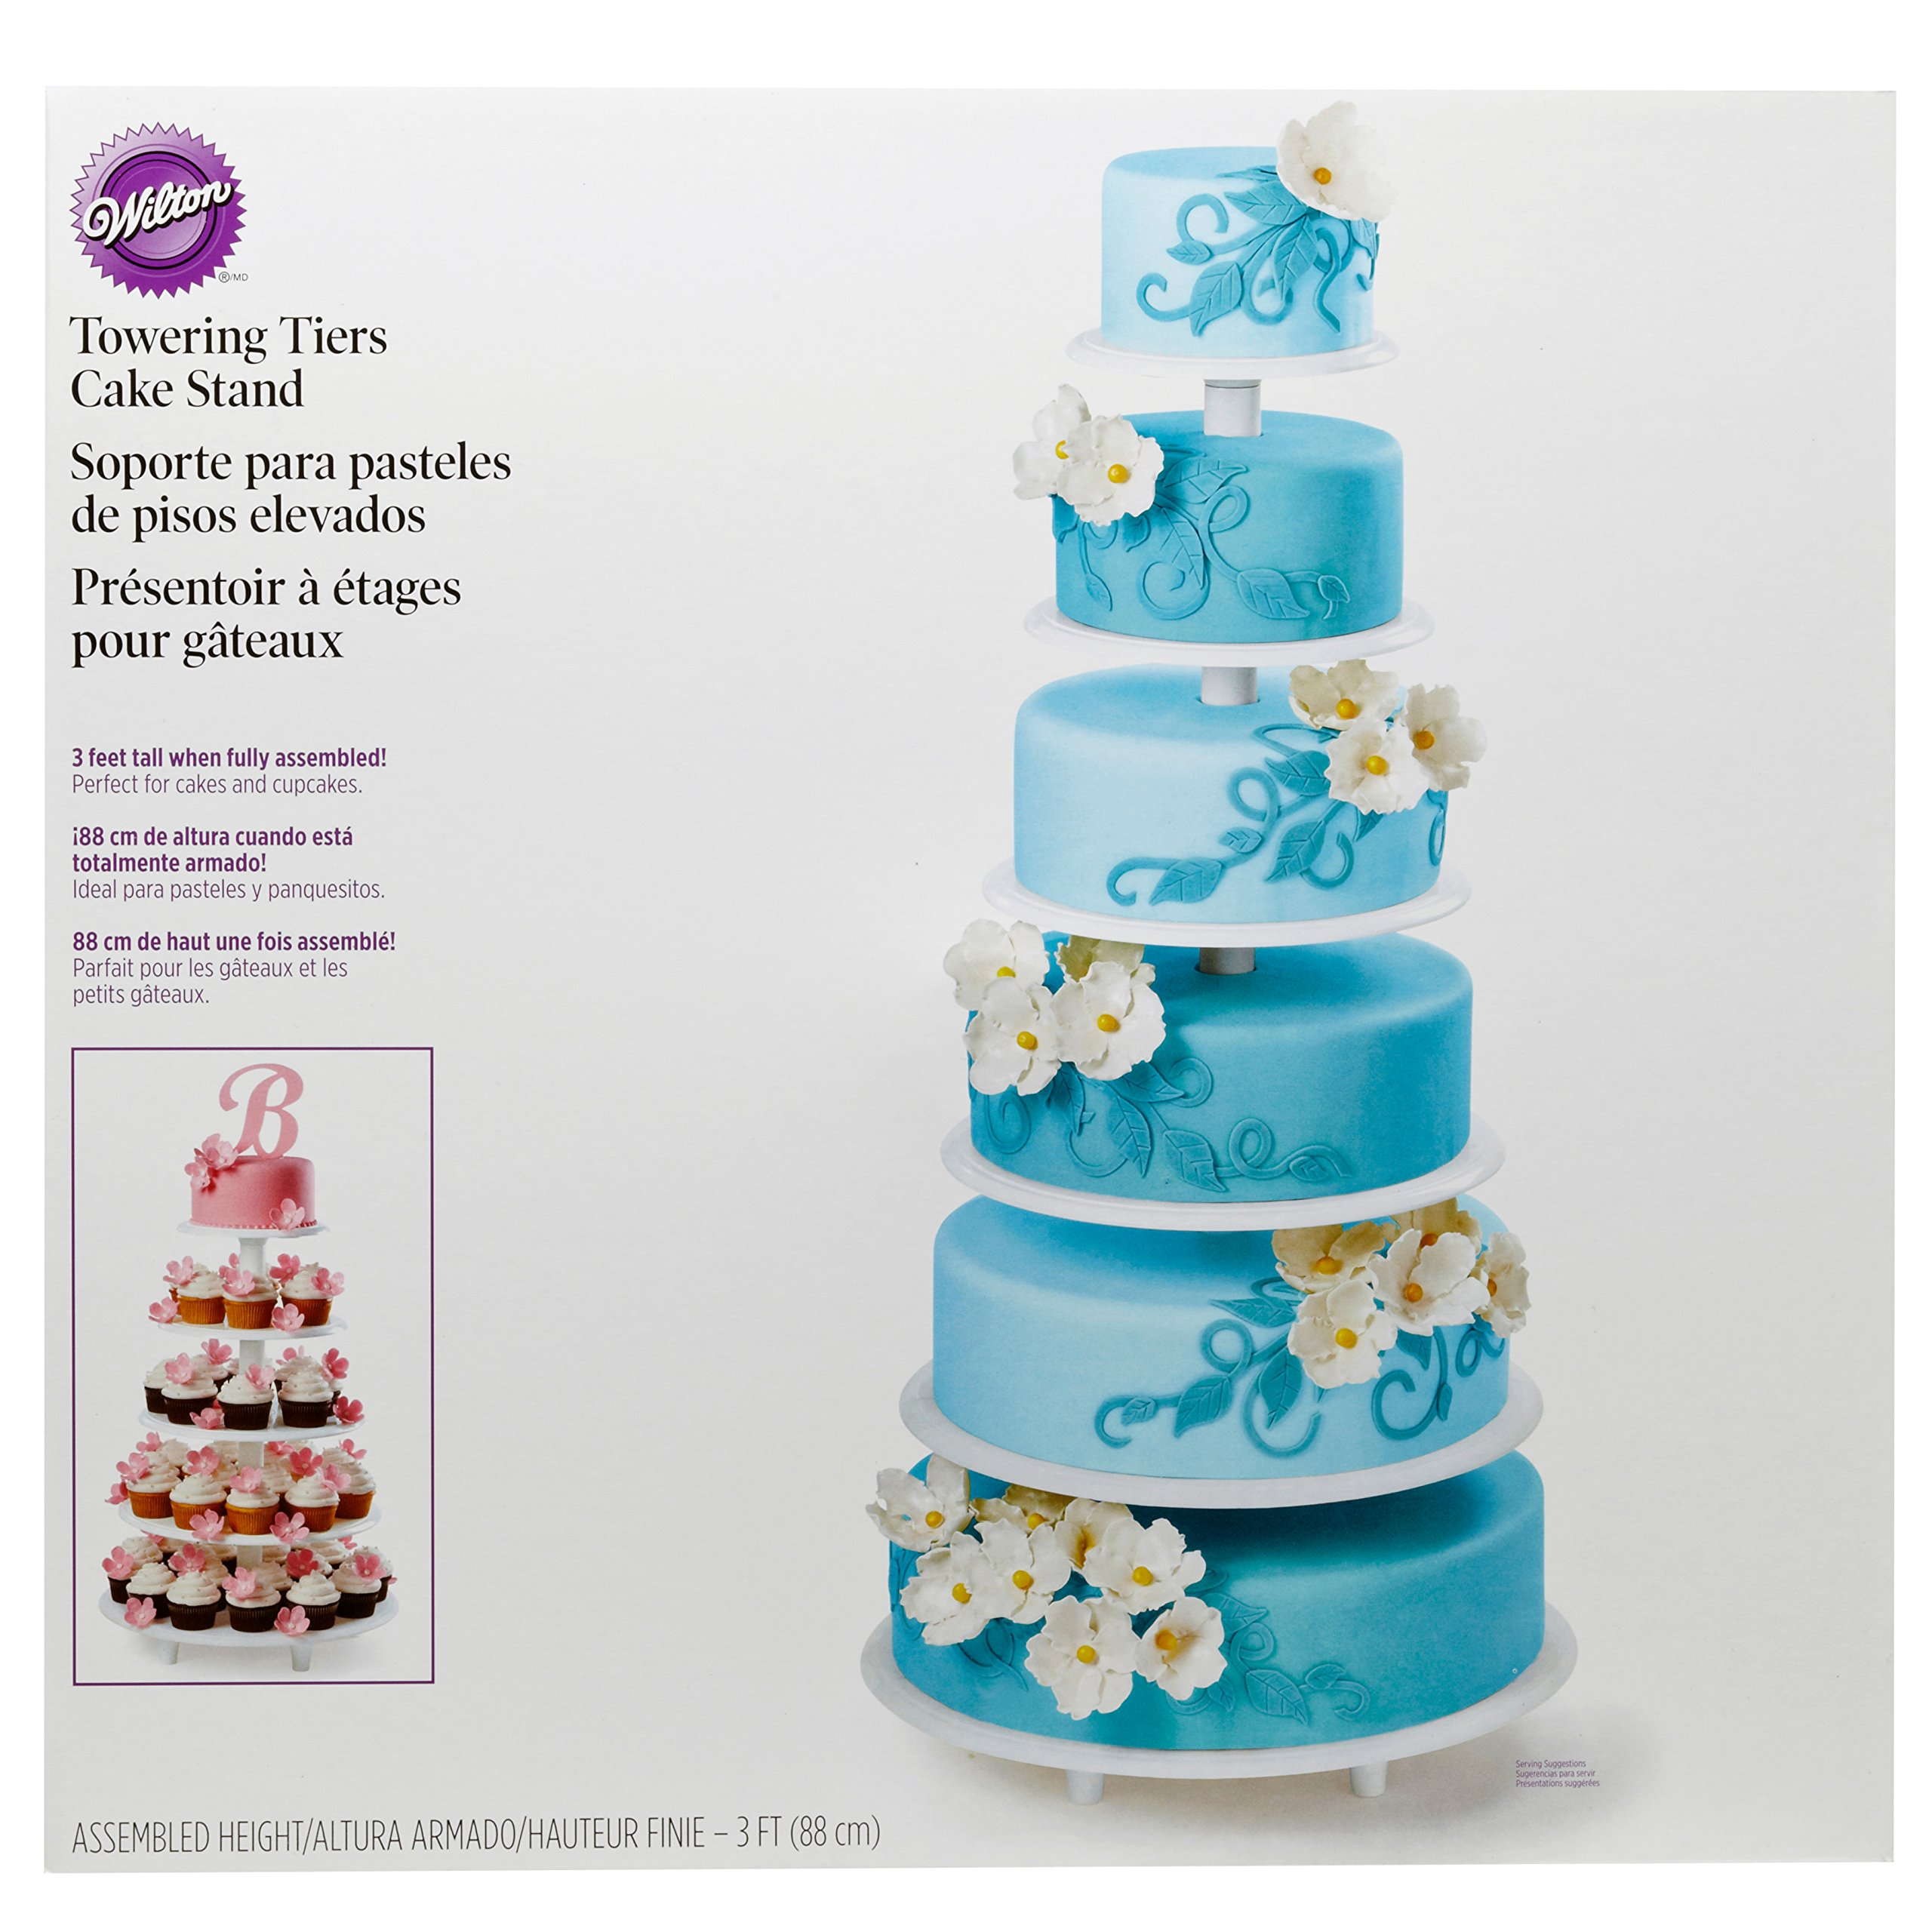 Wilton Towering Tiers Cupcake and Dessert Stand, Great for Displaying Cupcakes, Danishes and Your Favorite Hors d'Oeuvres, White, 3-foot, 28-Piece by Wilton (Image #2)